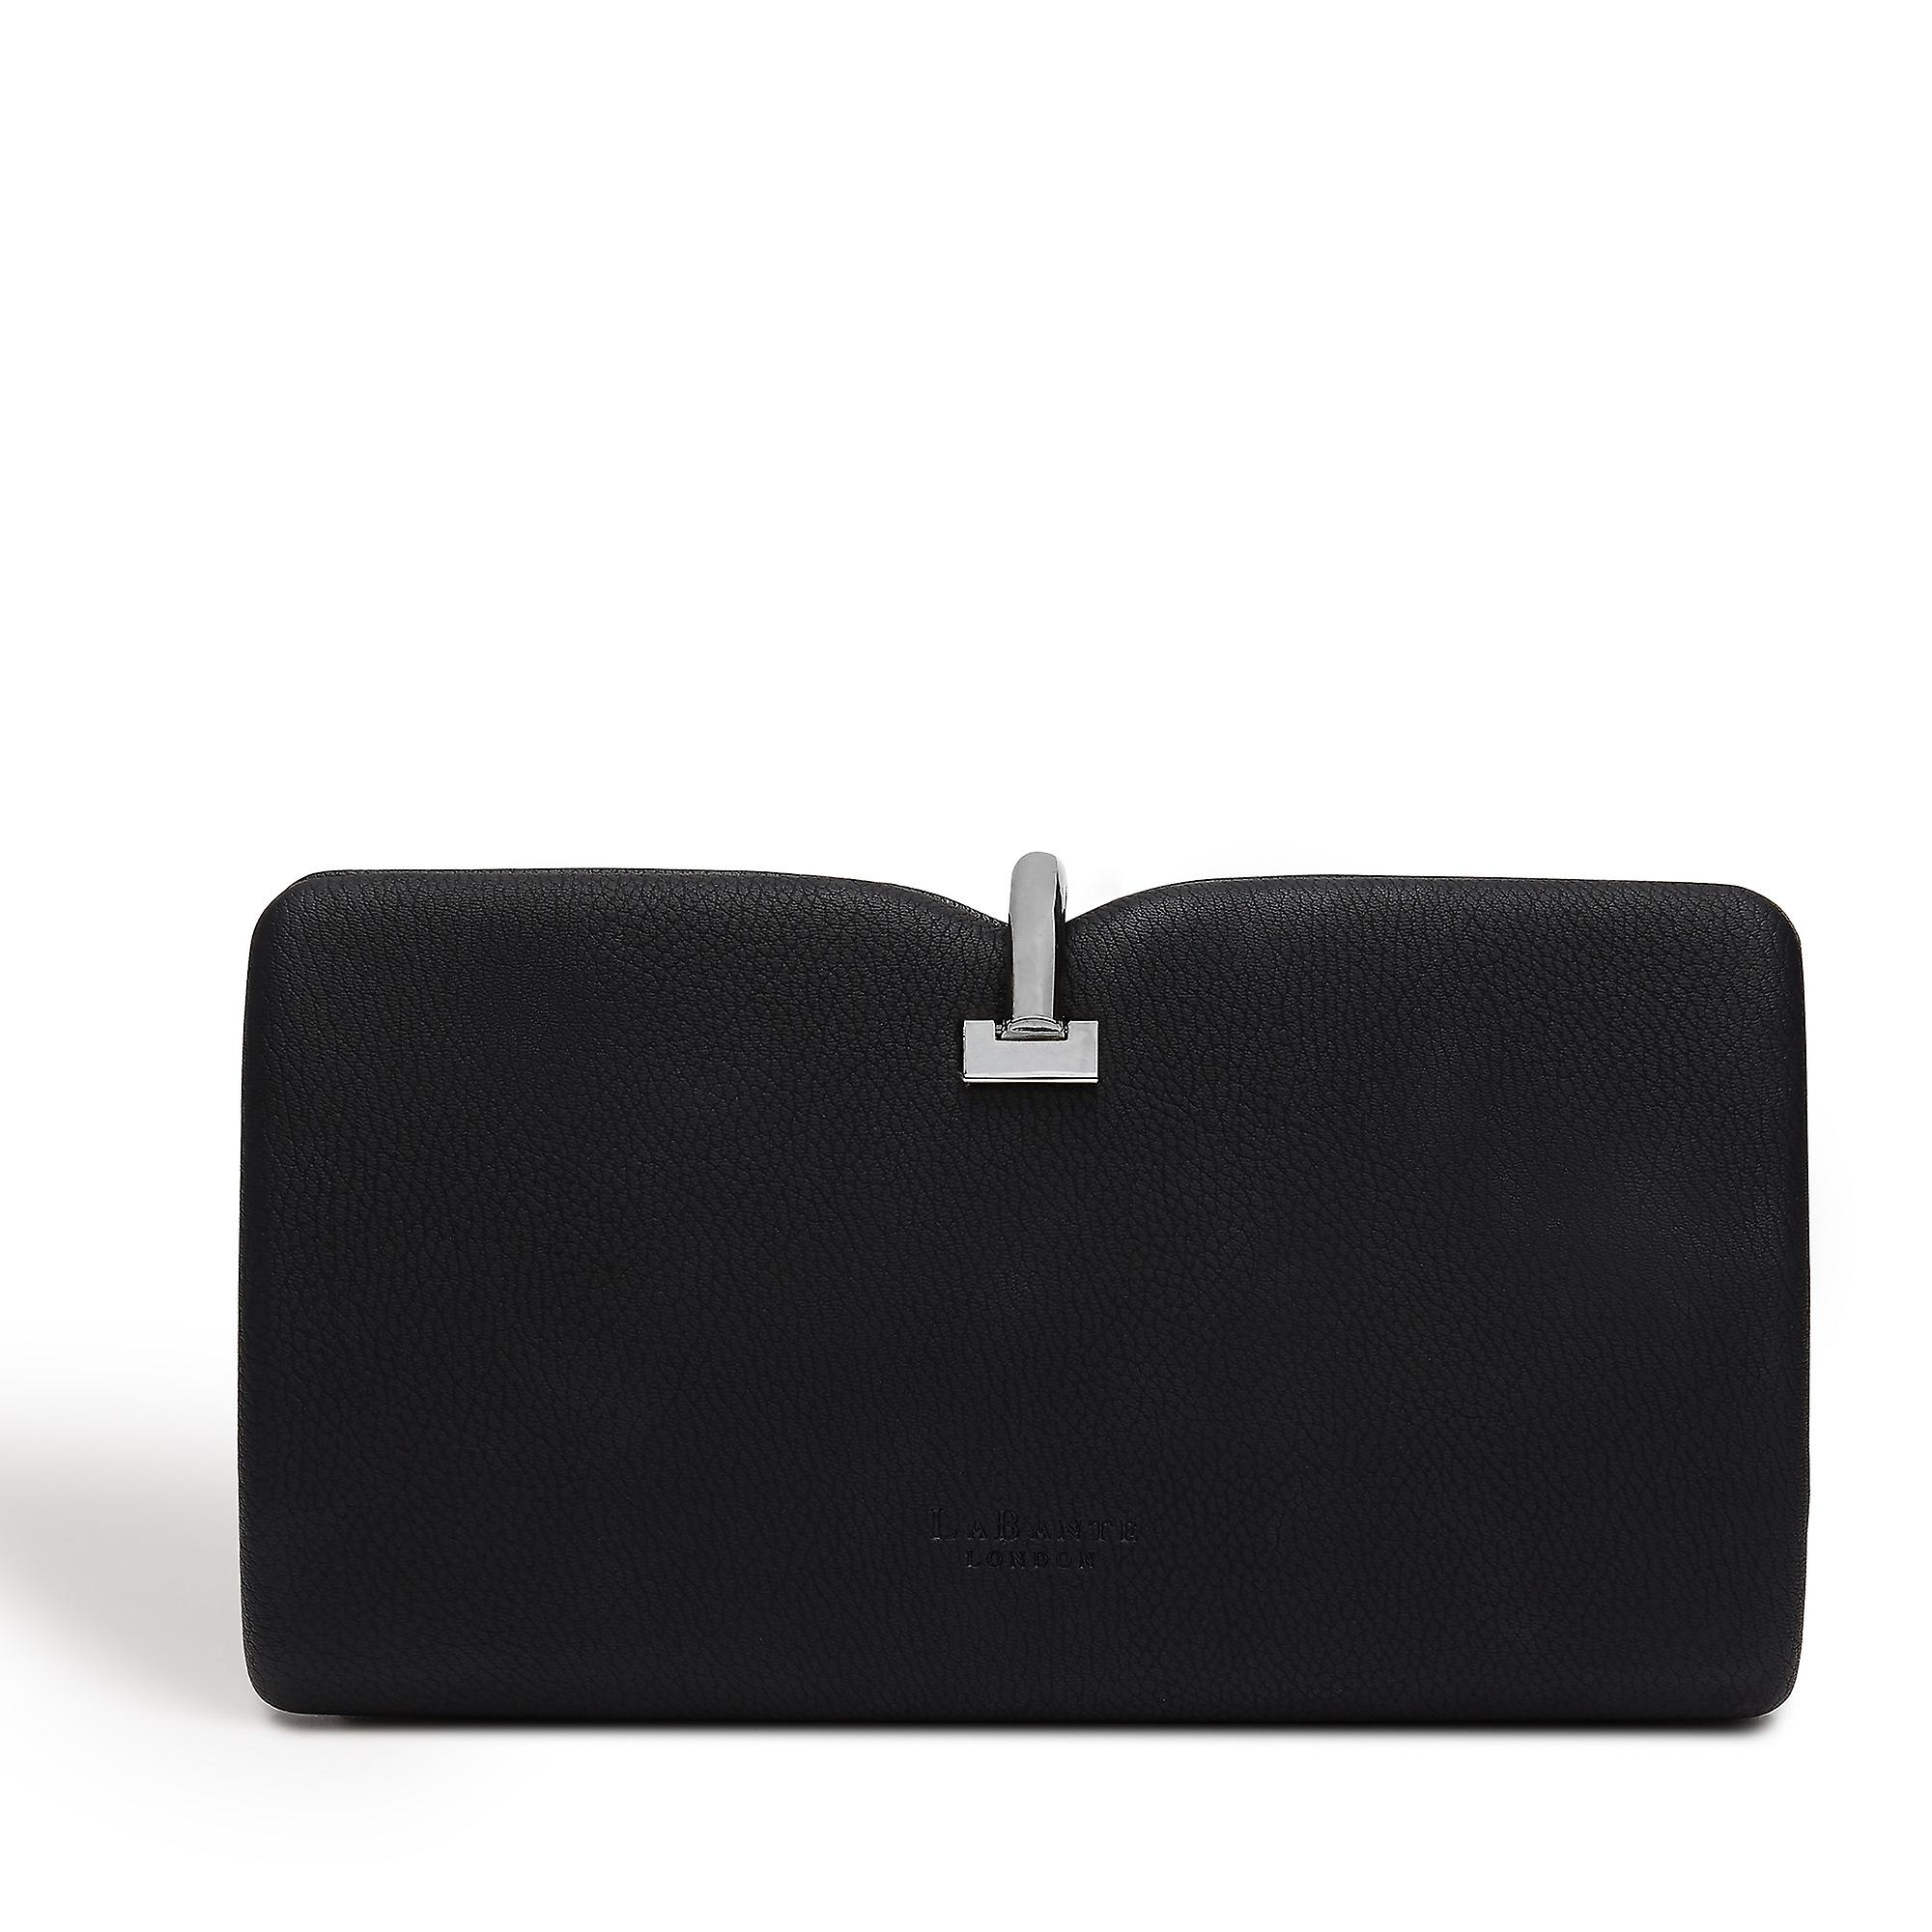 Allegro Vegan Black Clutch Bag